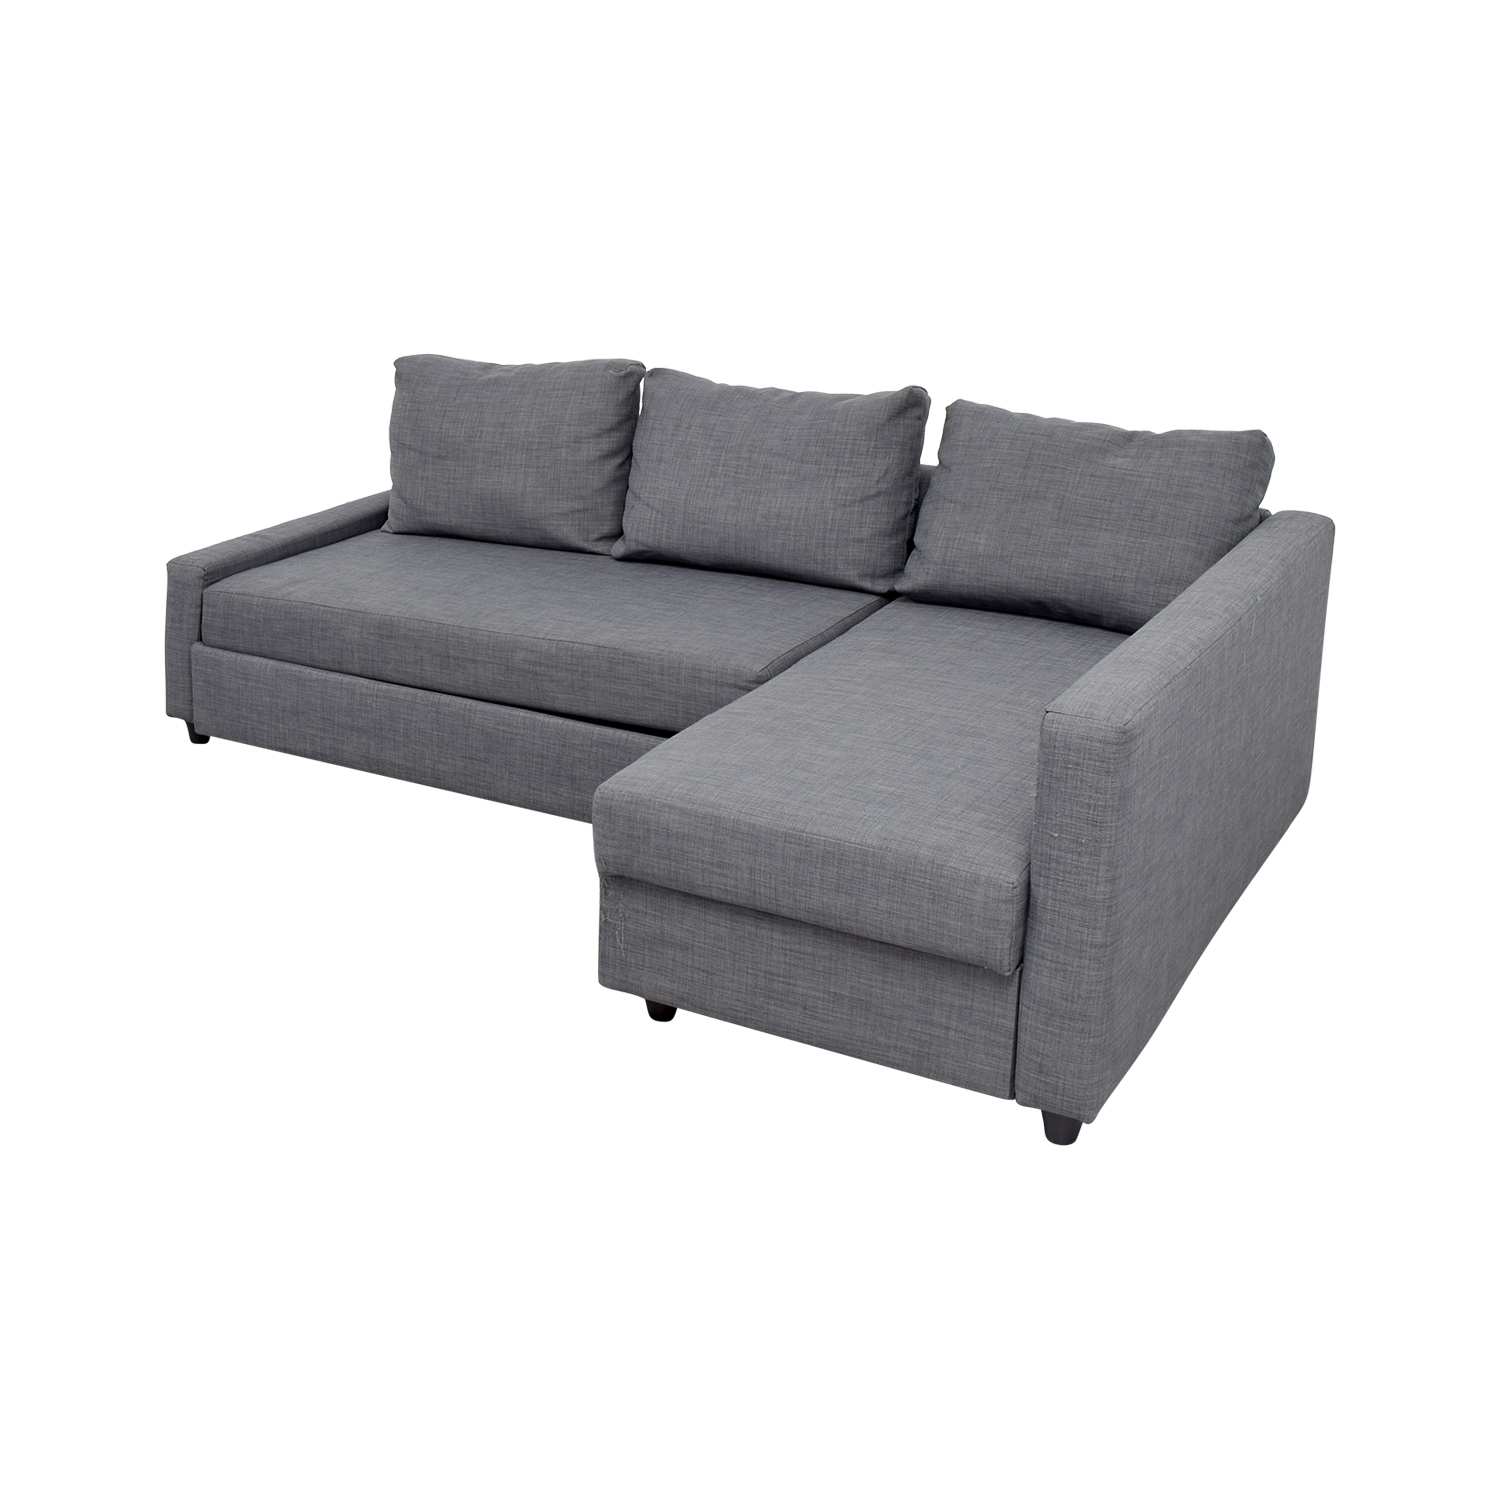 41 off ikea ikea grey sleeper chaise sectional sofas. Black Bedroom Furniture Sets. Home Design Ideas